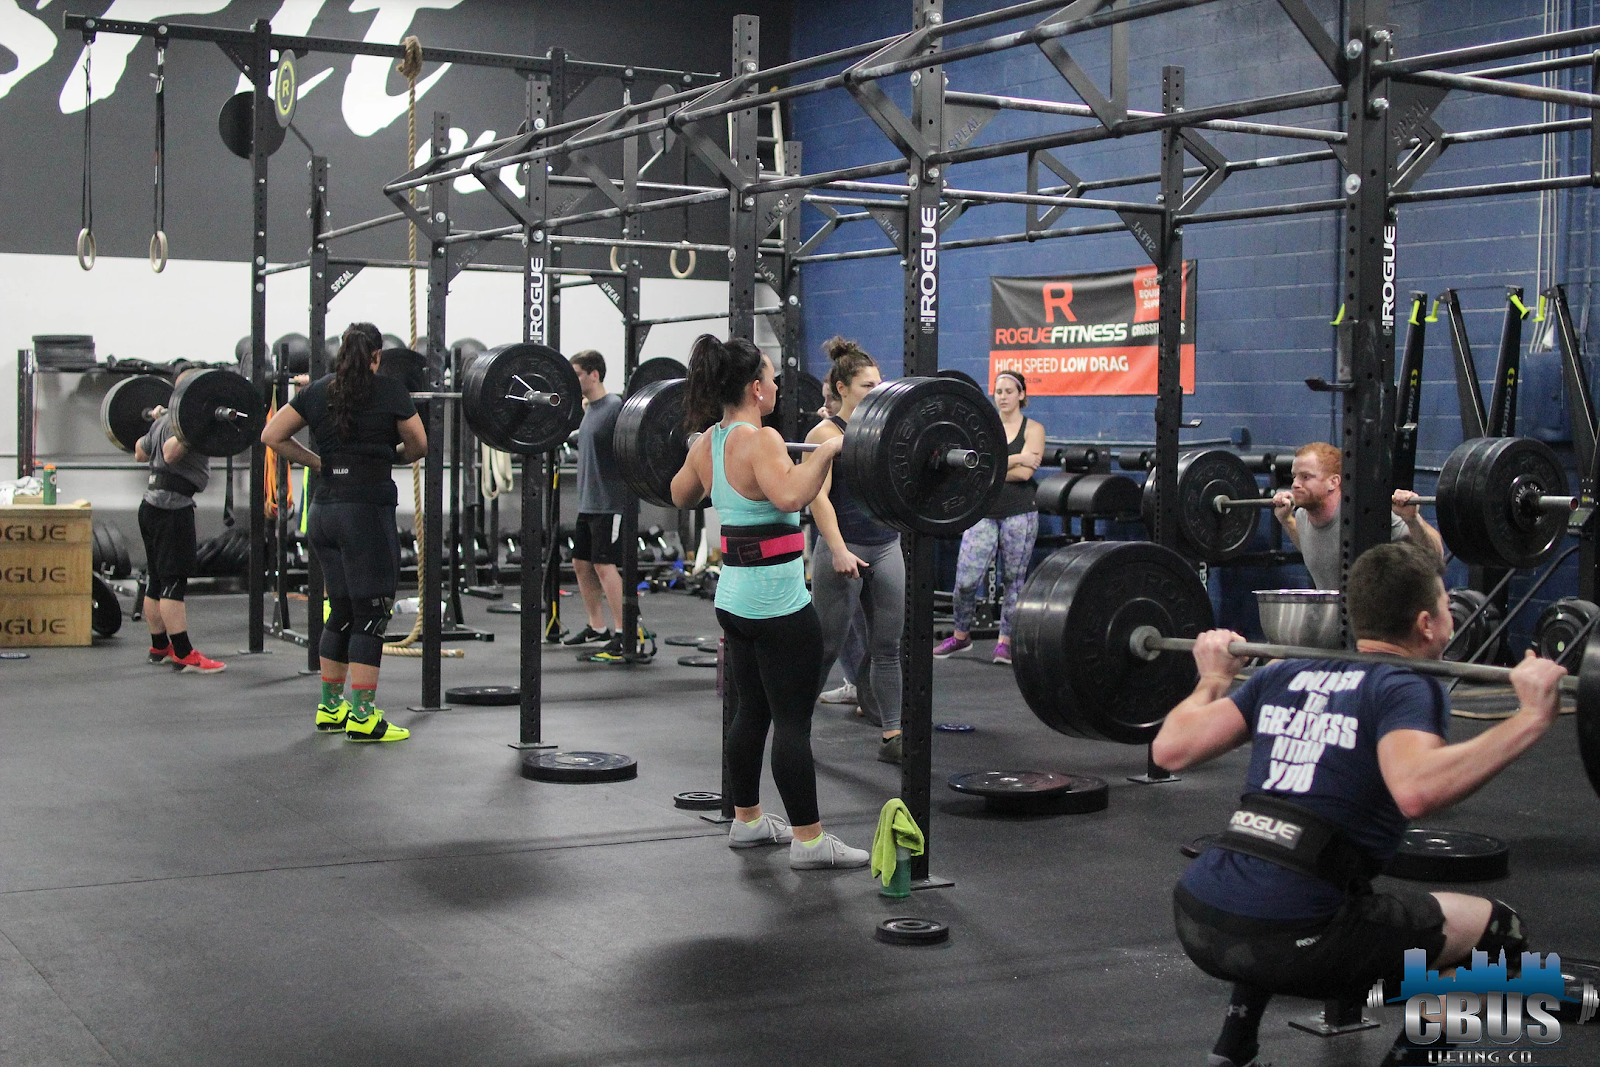 Group of athletes power squatting